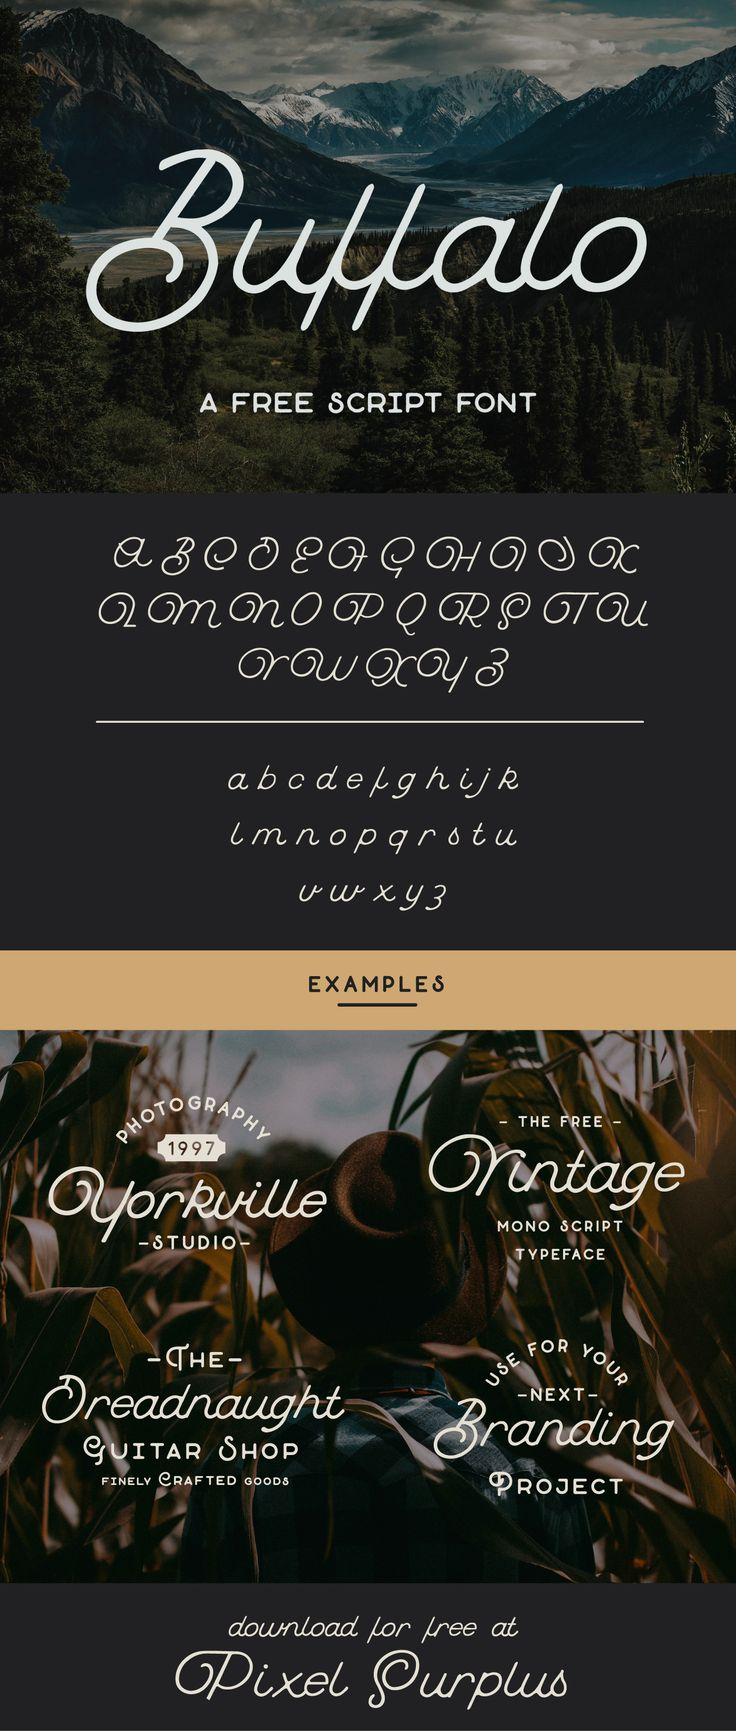 cursive fonts for wedding cards%0A Buffalo is a loopy  u     quirky monoline script font from Hustle Supply Co   This premium